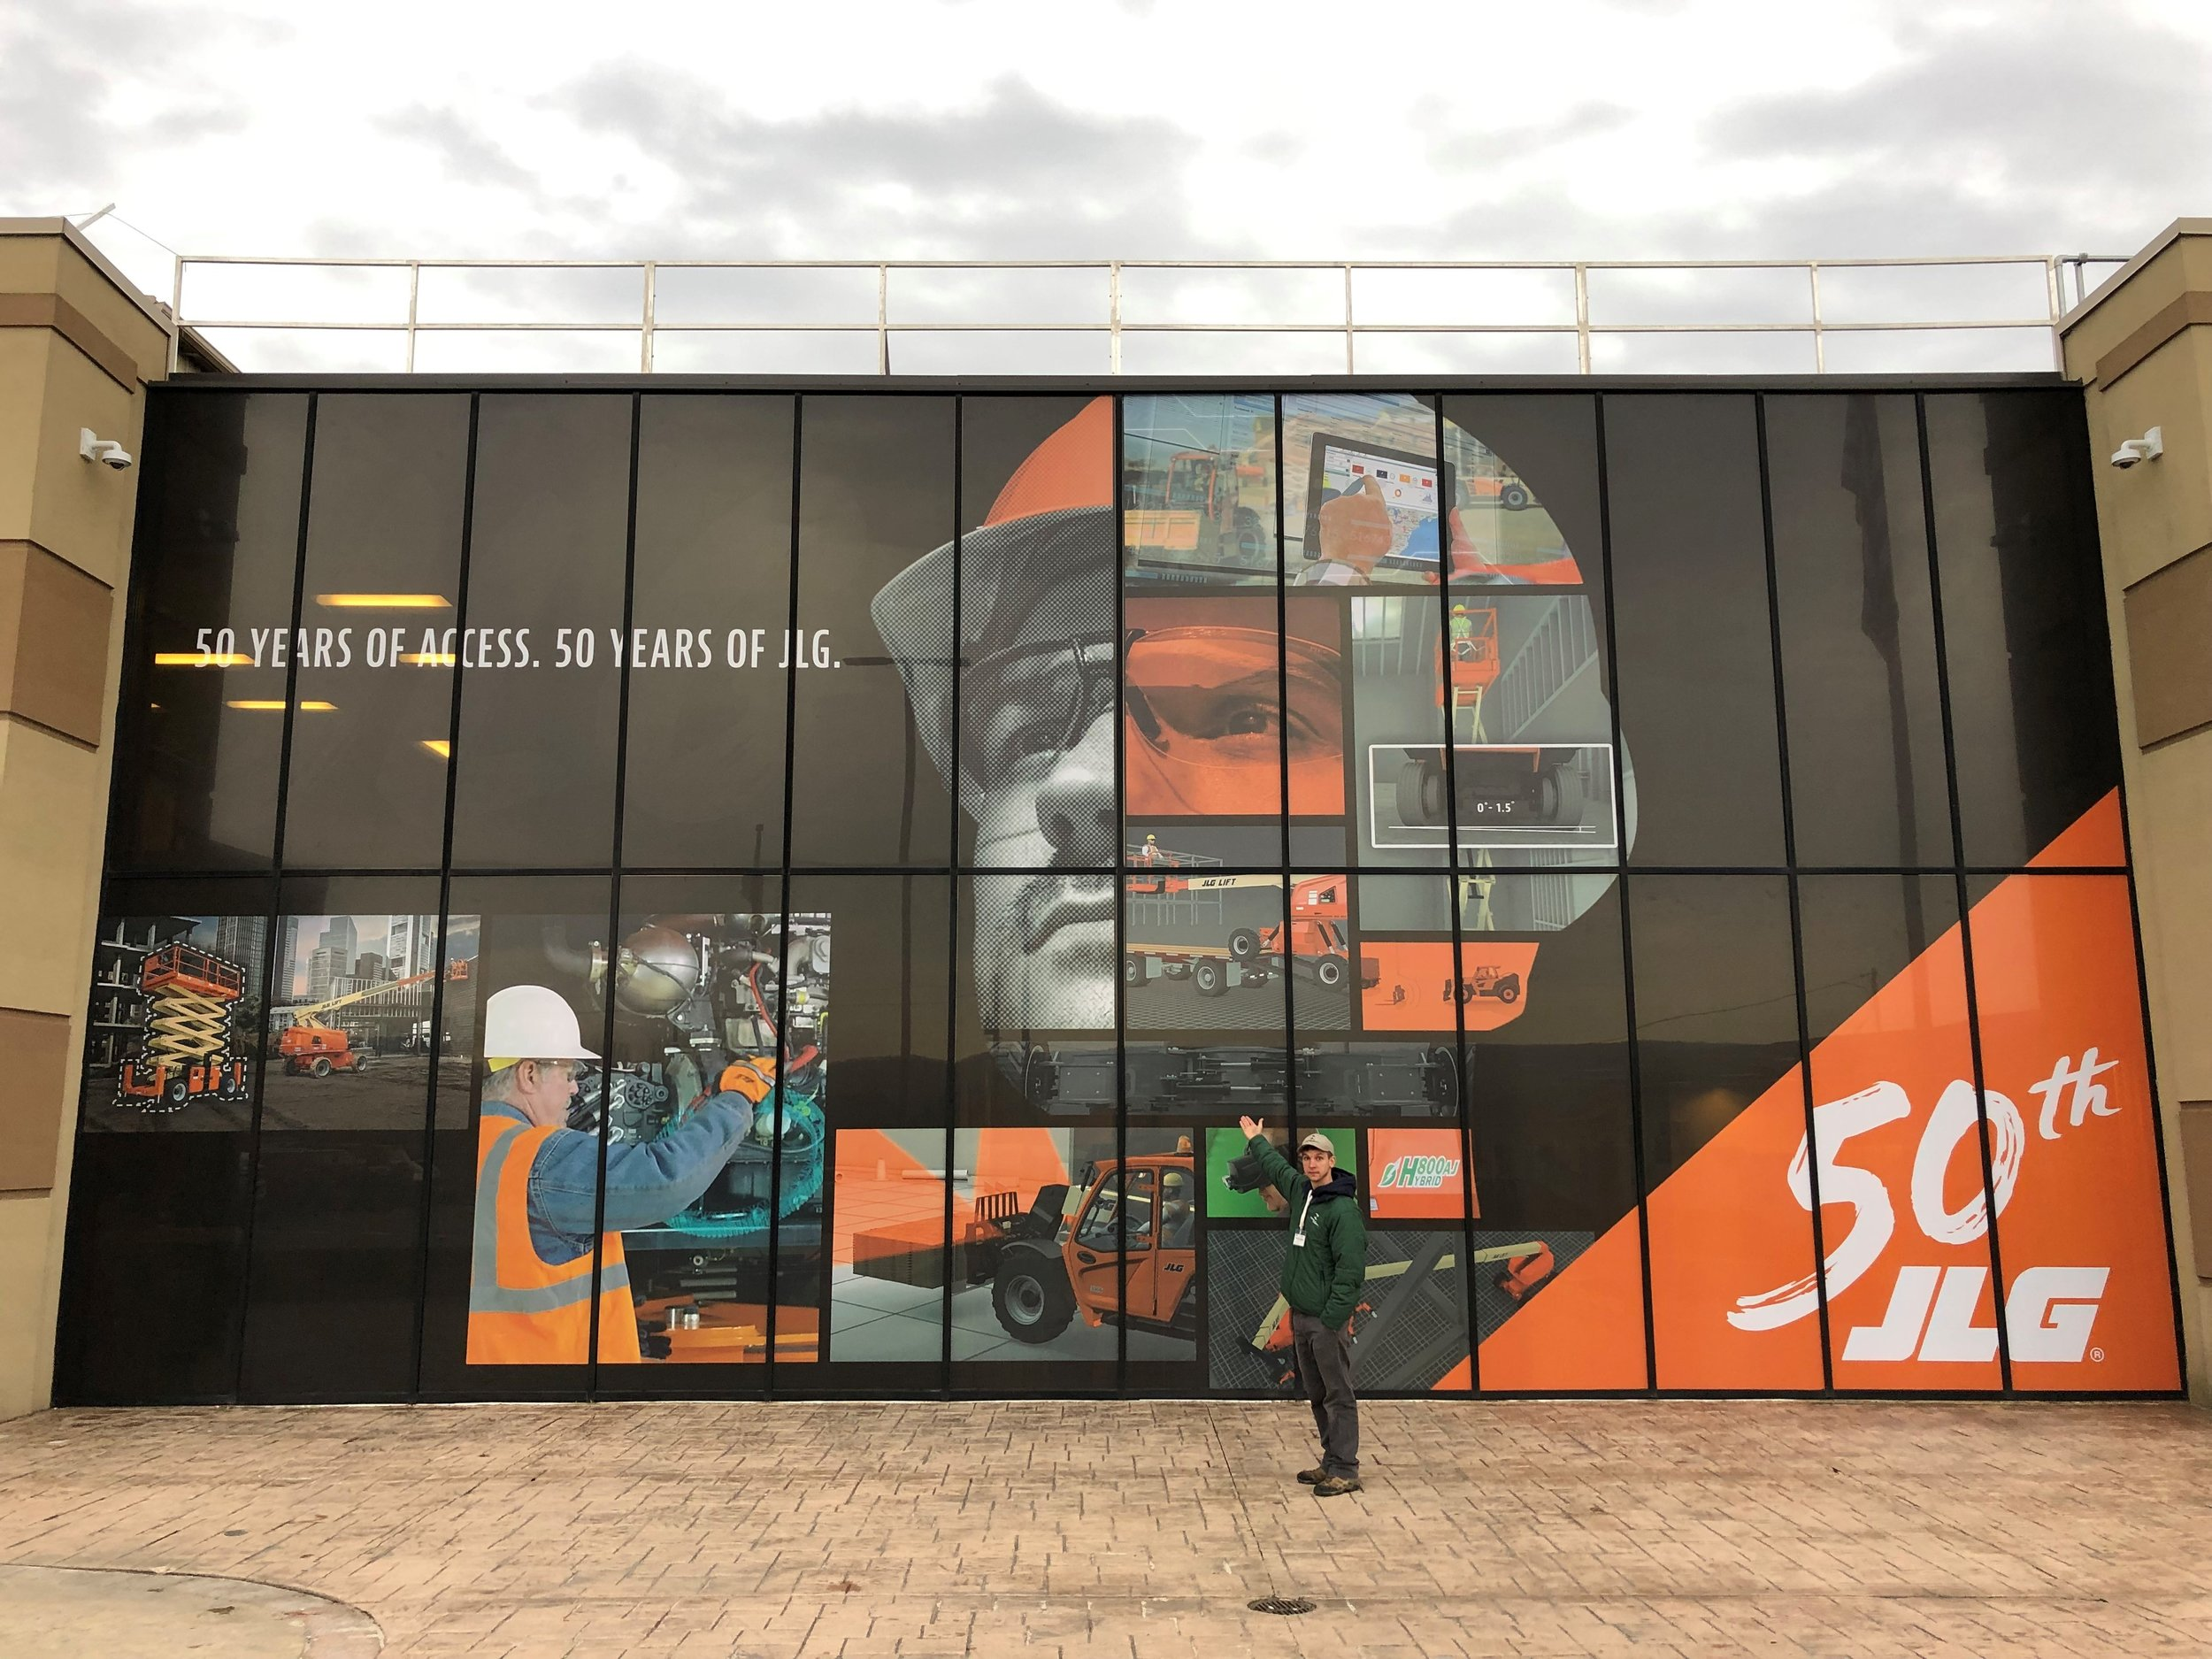 Who We Are.. - With over 30 years of experience, we truly understand the role and importance that signage and graphics play in driving your business, supporting your brand, and maximizing your marketing efforts.Learn More <<Read about this Project